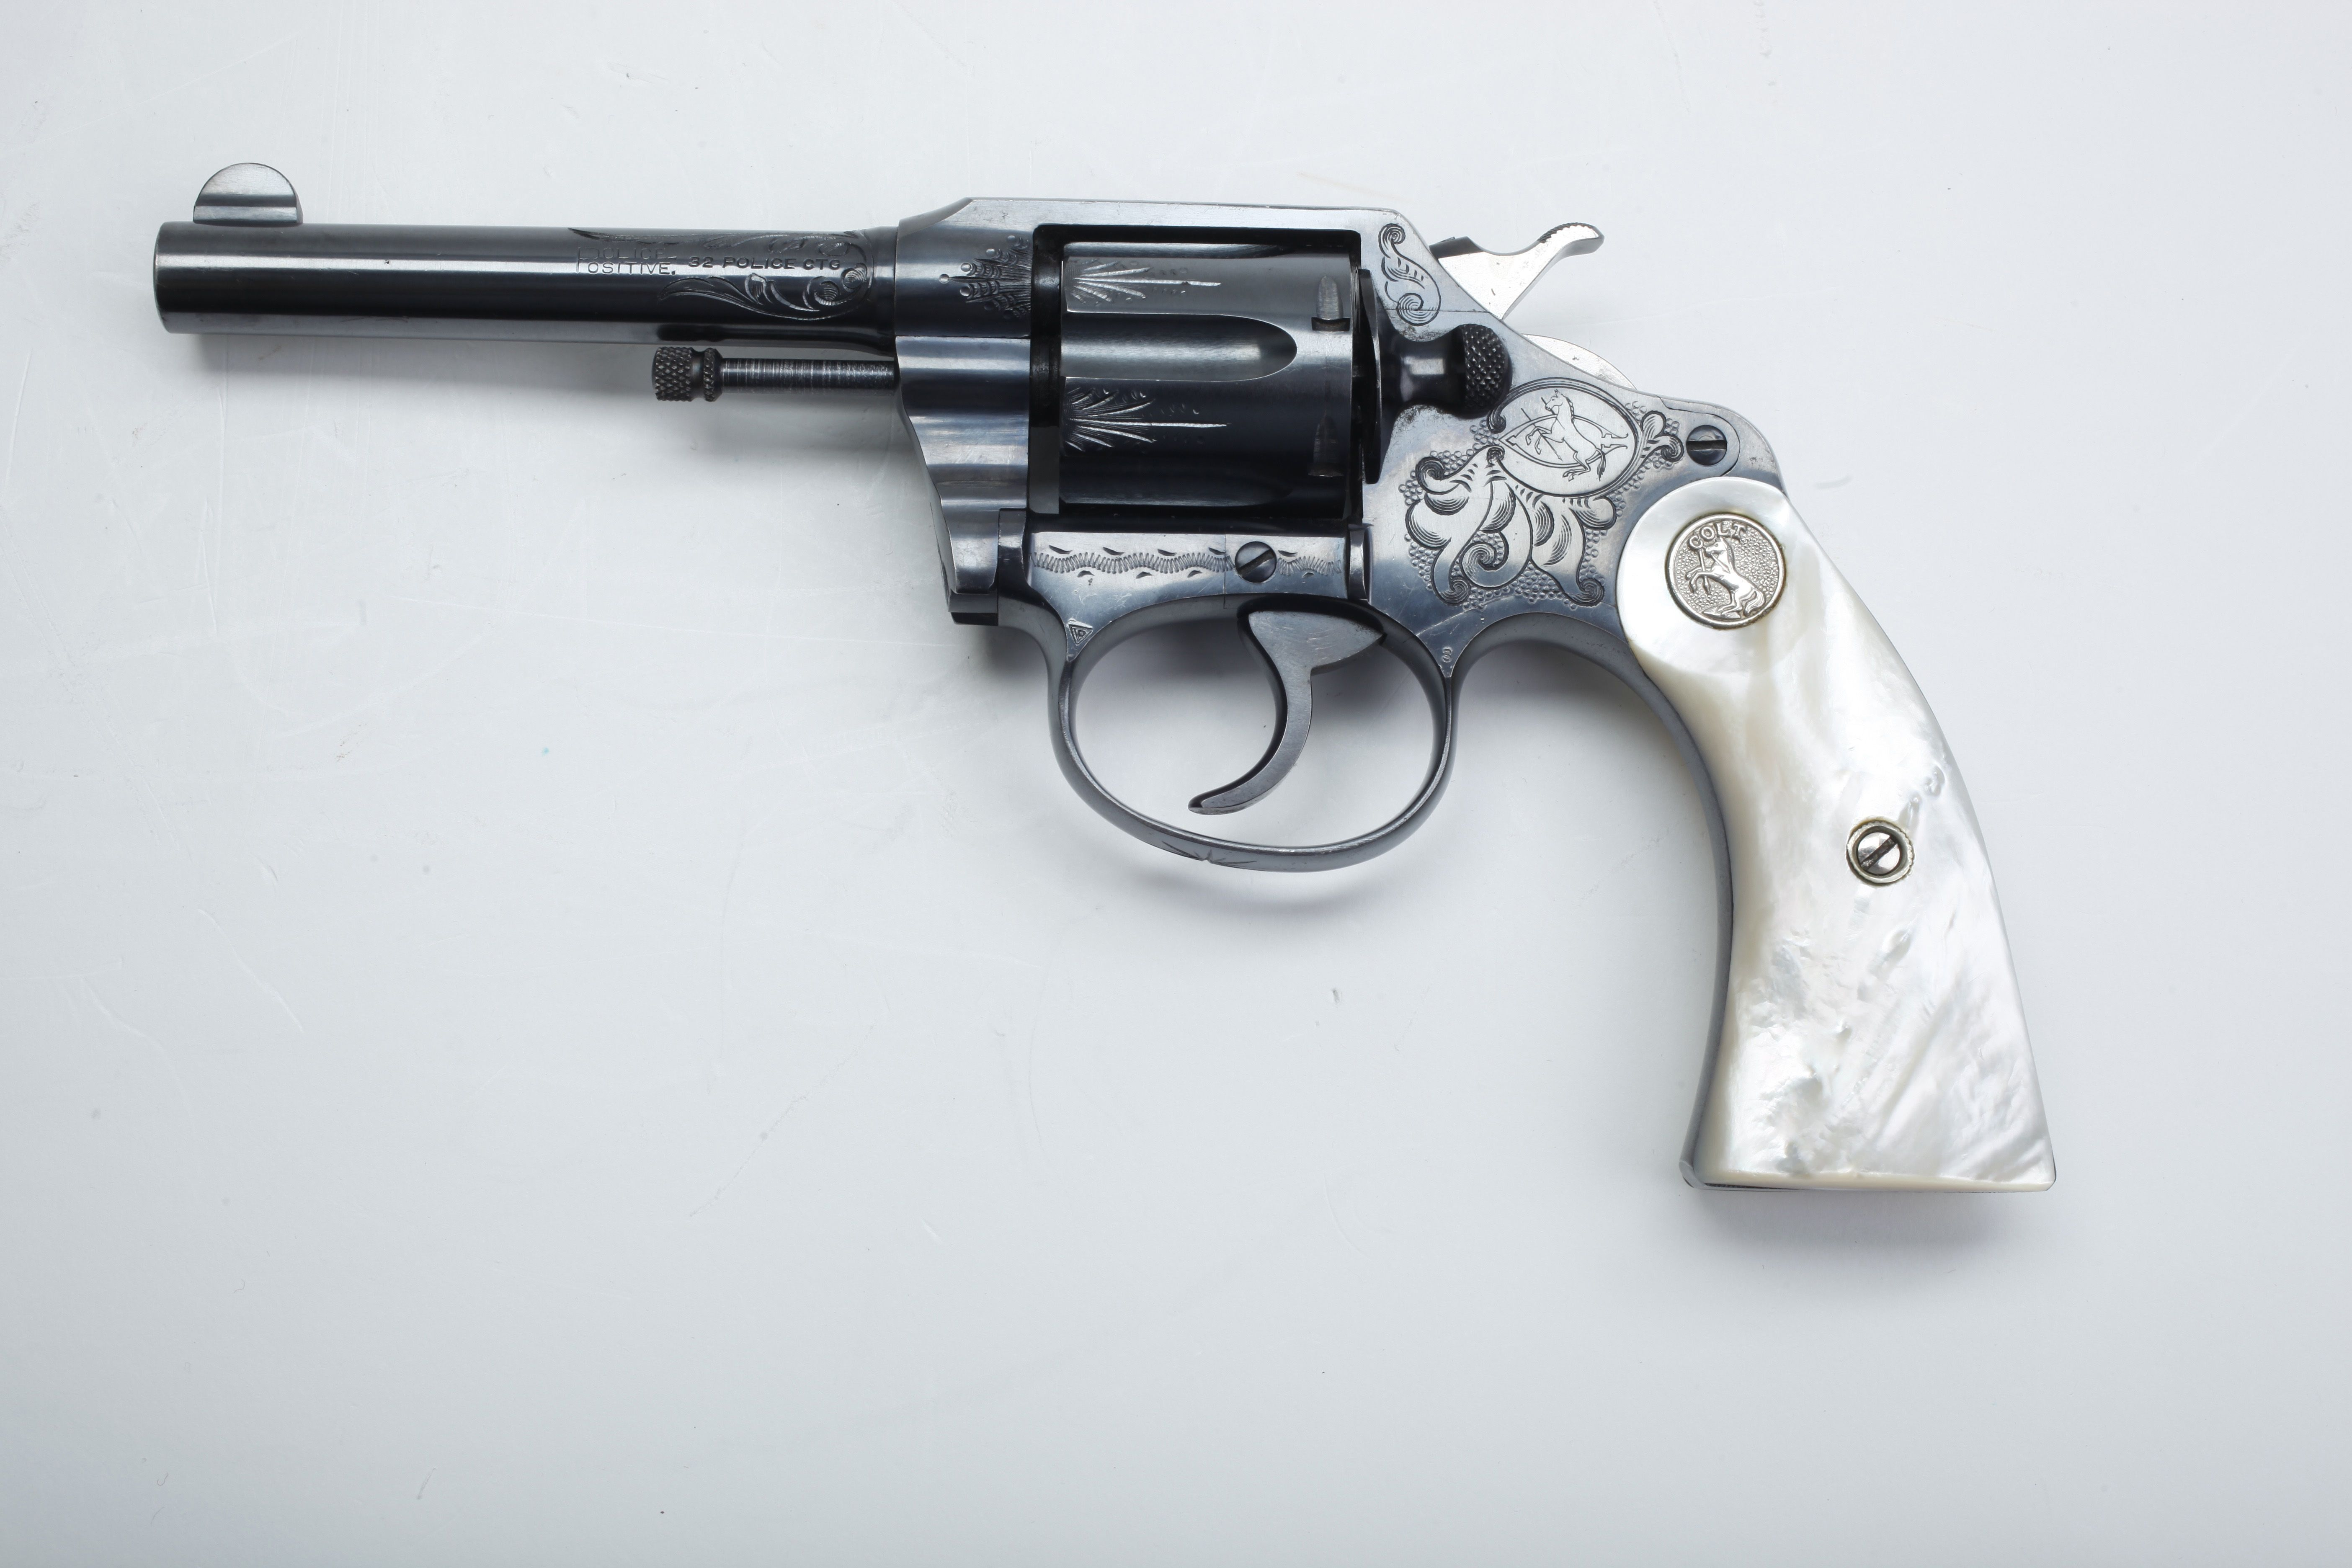 Engraved @Chelsea Rose Rose Rose Rose Satterfield Police Positive - One of the very nicest .32 caliber Colt Police Positive revolvers made; fitted with factory mother-of-pearl grip panels and refined engraving.  Made from 1907 to 1947, this small frame double-action once outfitted many constables and officers around the nation.  Available in fixed sight or target versions, and in blued and nickled finishes,